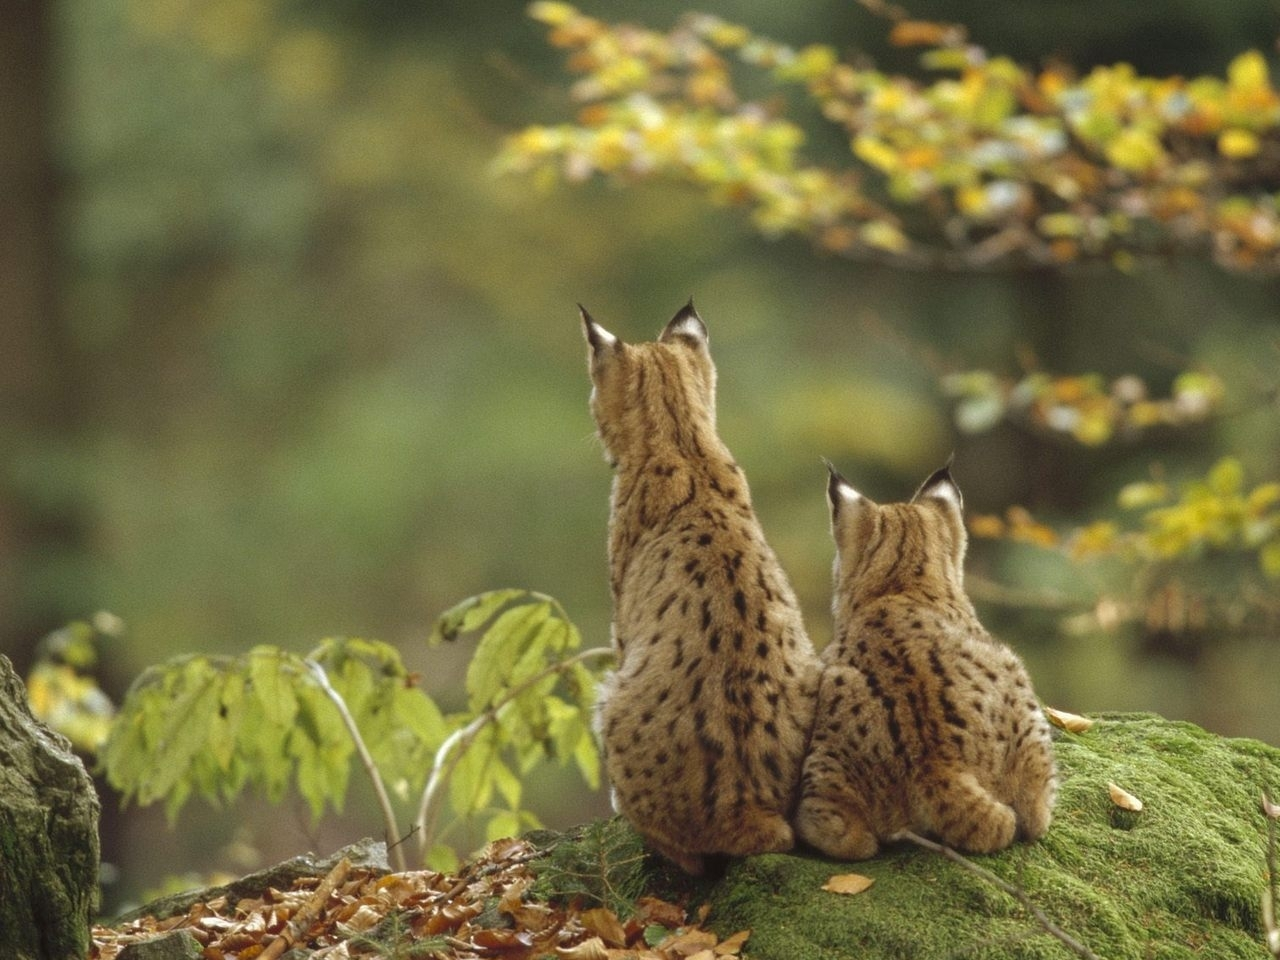 31673 download wallpaper Animals, Bobcats screensavers and pictures for free